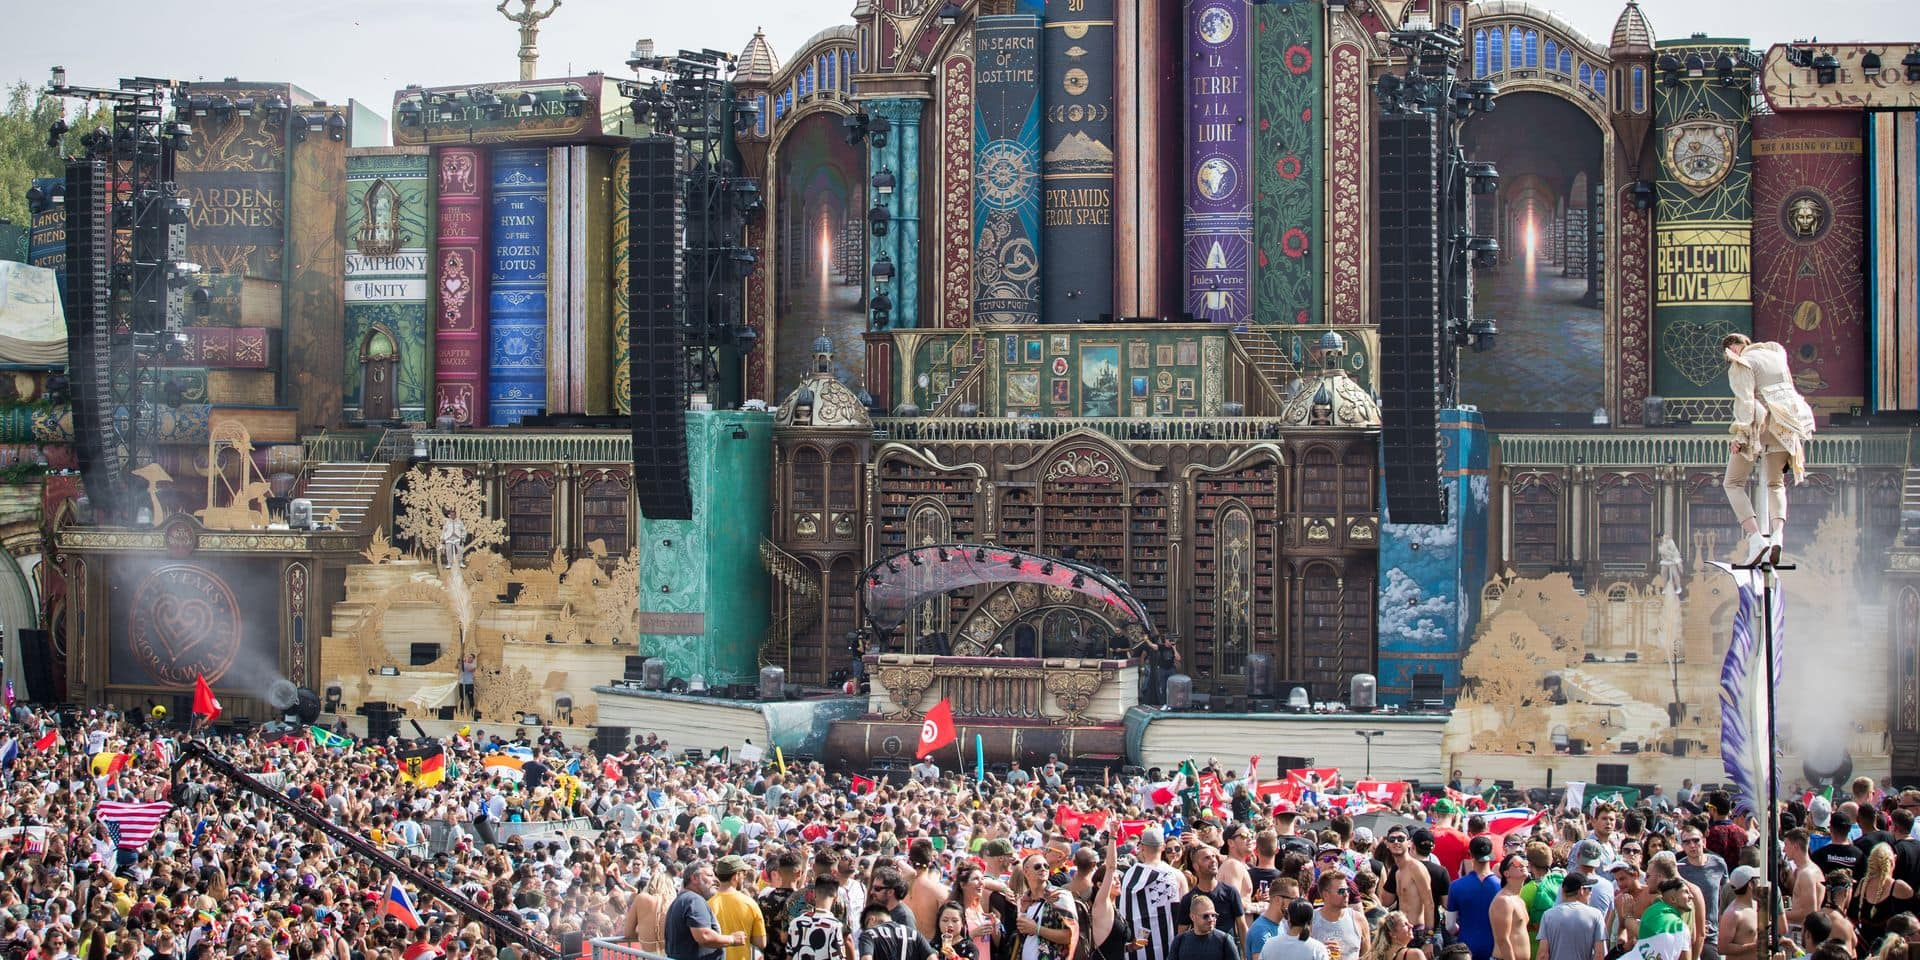 Tomorrowland: Vingt-quatre dealers interpellés lors du premier week-end de Tomorrowland